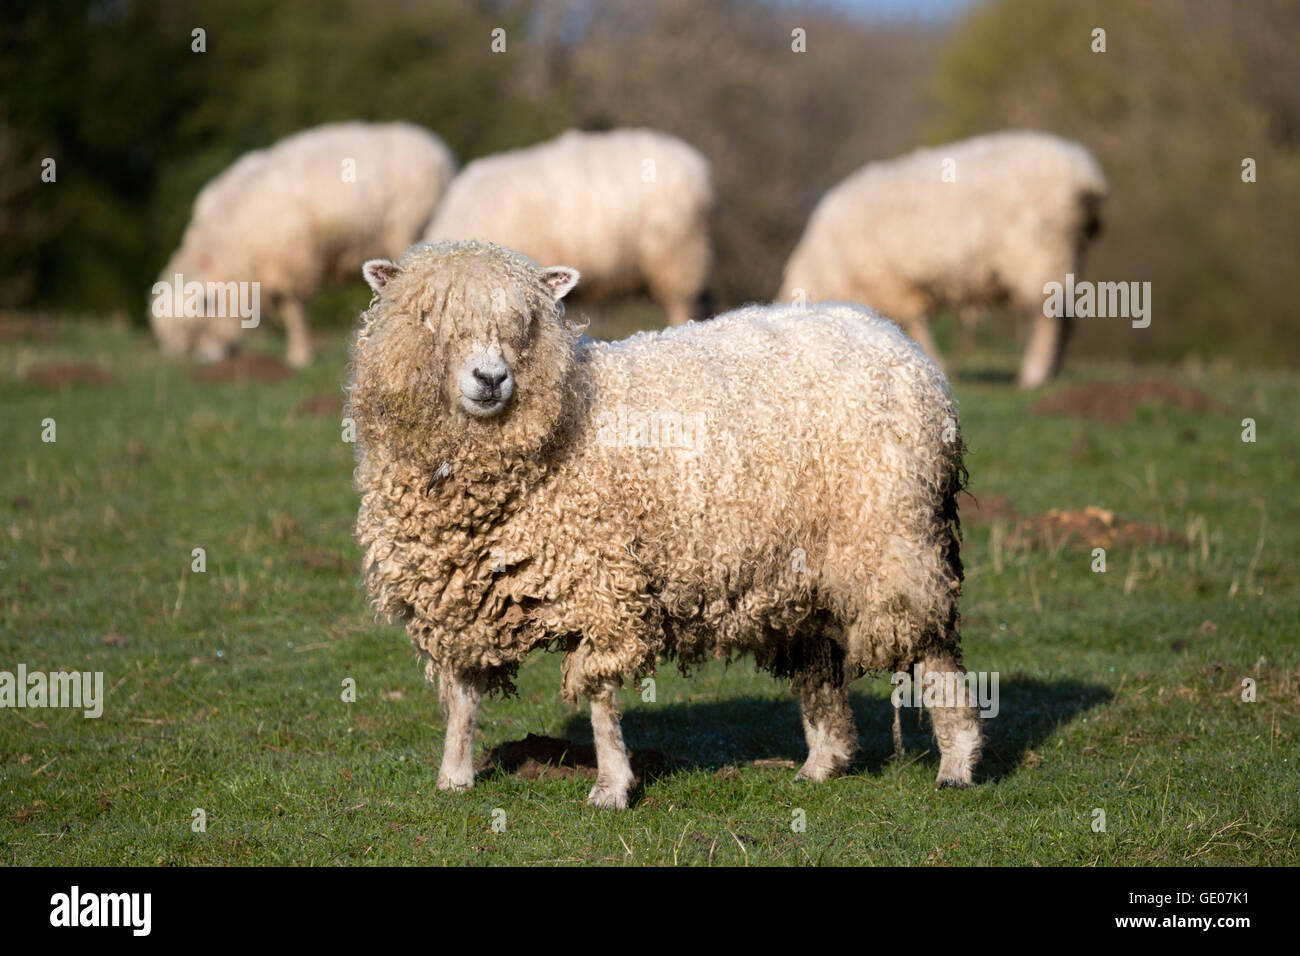 Cotswold Lion breed of sheep, Cotswolds, Gloucestershire, England, United Kingdom, Europe - Stock Image